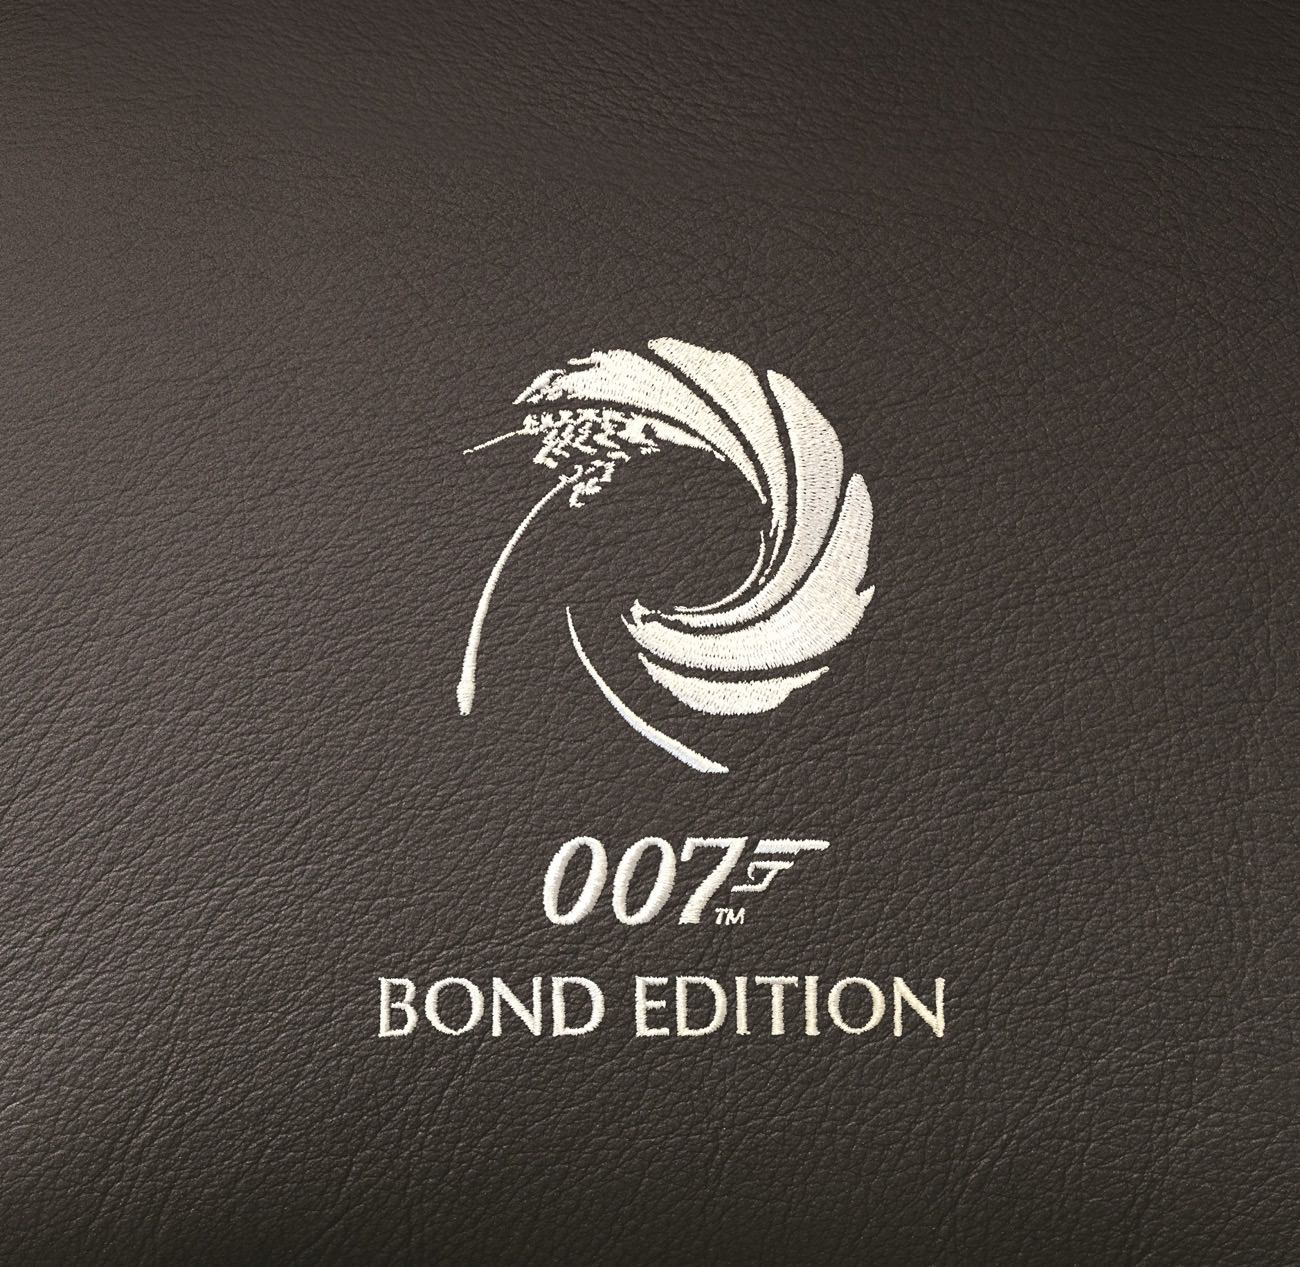 Aston-Martin-Bond-Edition-4